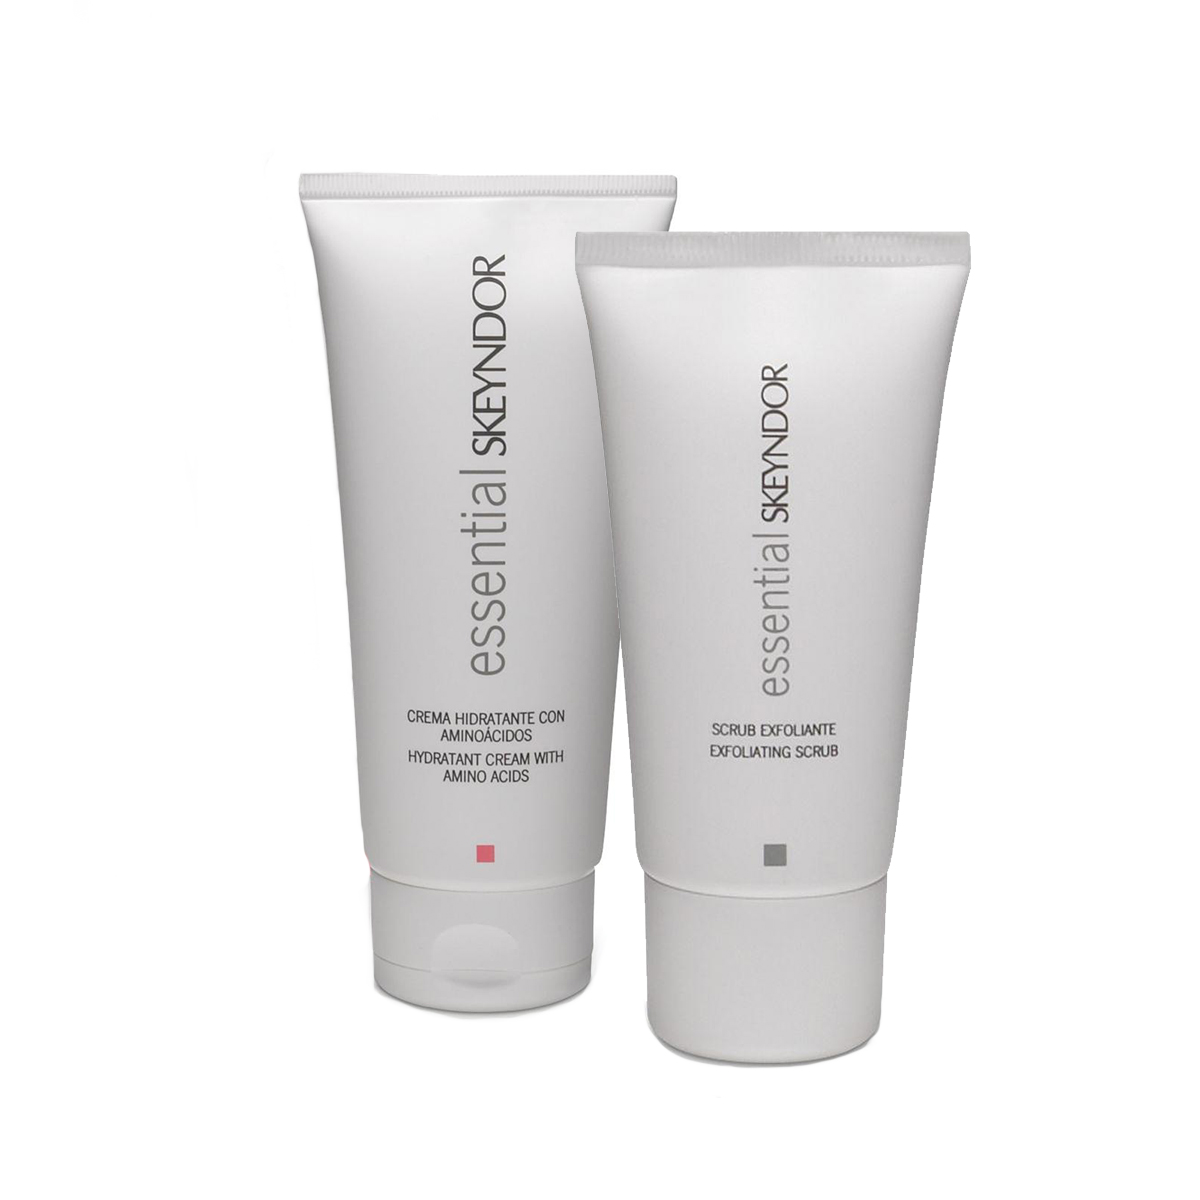 SKEYNDOR Hydratant Cream and Scrub